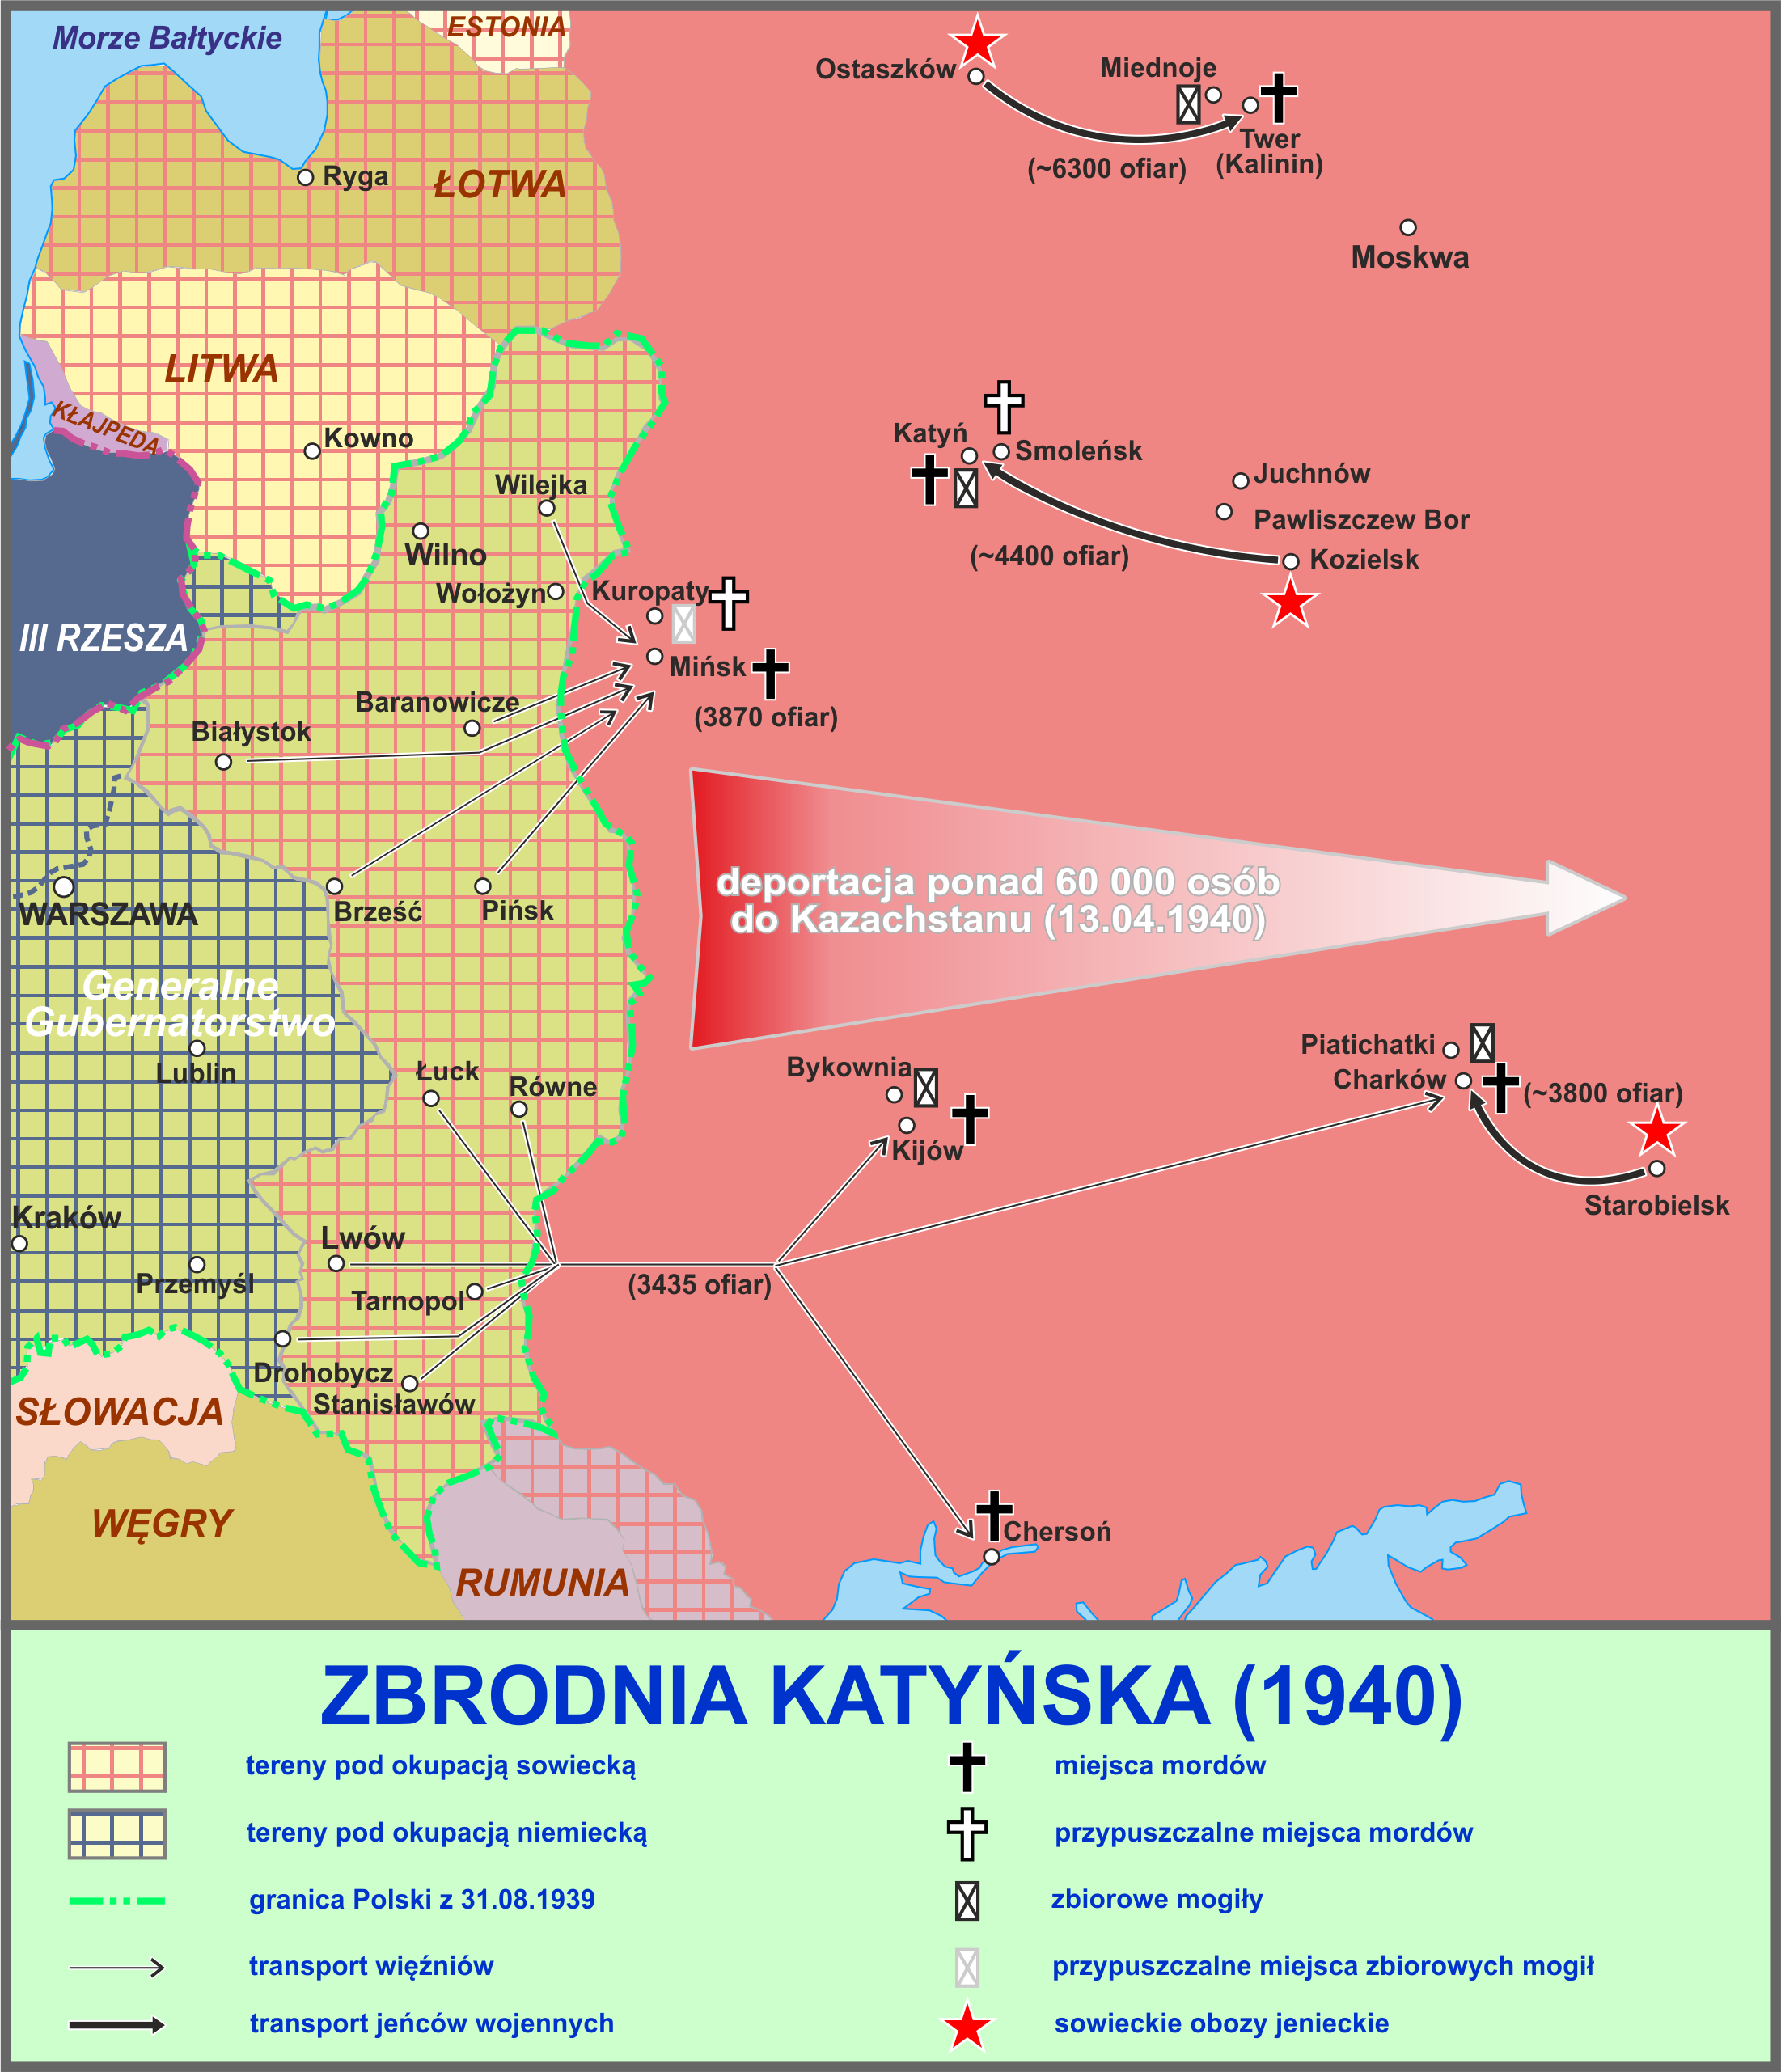 File:Katyn.png - Wikimedia Commons on kokoda map, lidice map, romania map, khartoum map, midway map, europe map, aftermath map, yaroslavl map, big animal map, casablanca map, the kite runner map, war map, armenian genocide map, danzig map, unbroken map, berlin map, inventory map,